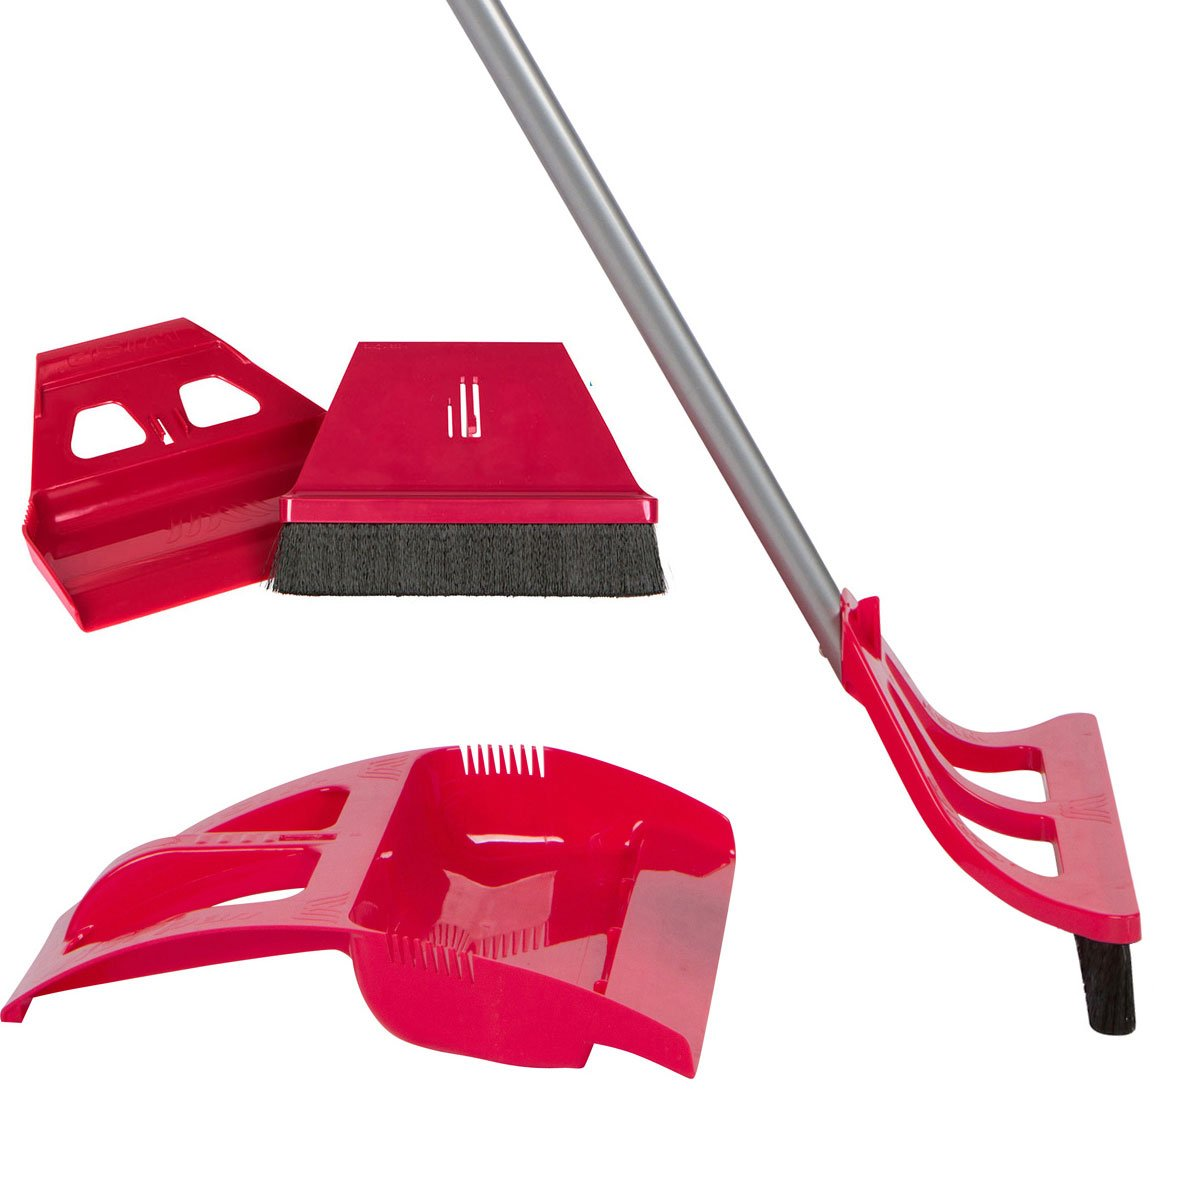 WISP Cleaning Set WISPsystem Telescoping Broom and Dustpan with miniWISP Hand Broom w/Bristle Seal Technology (Blue) WISP INDUSTRIES INC